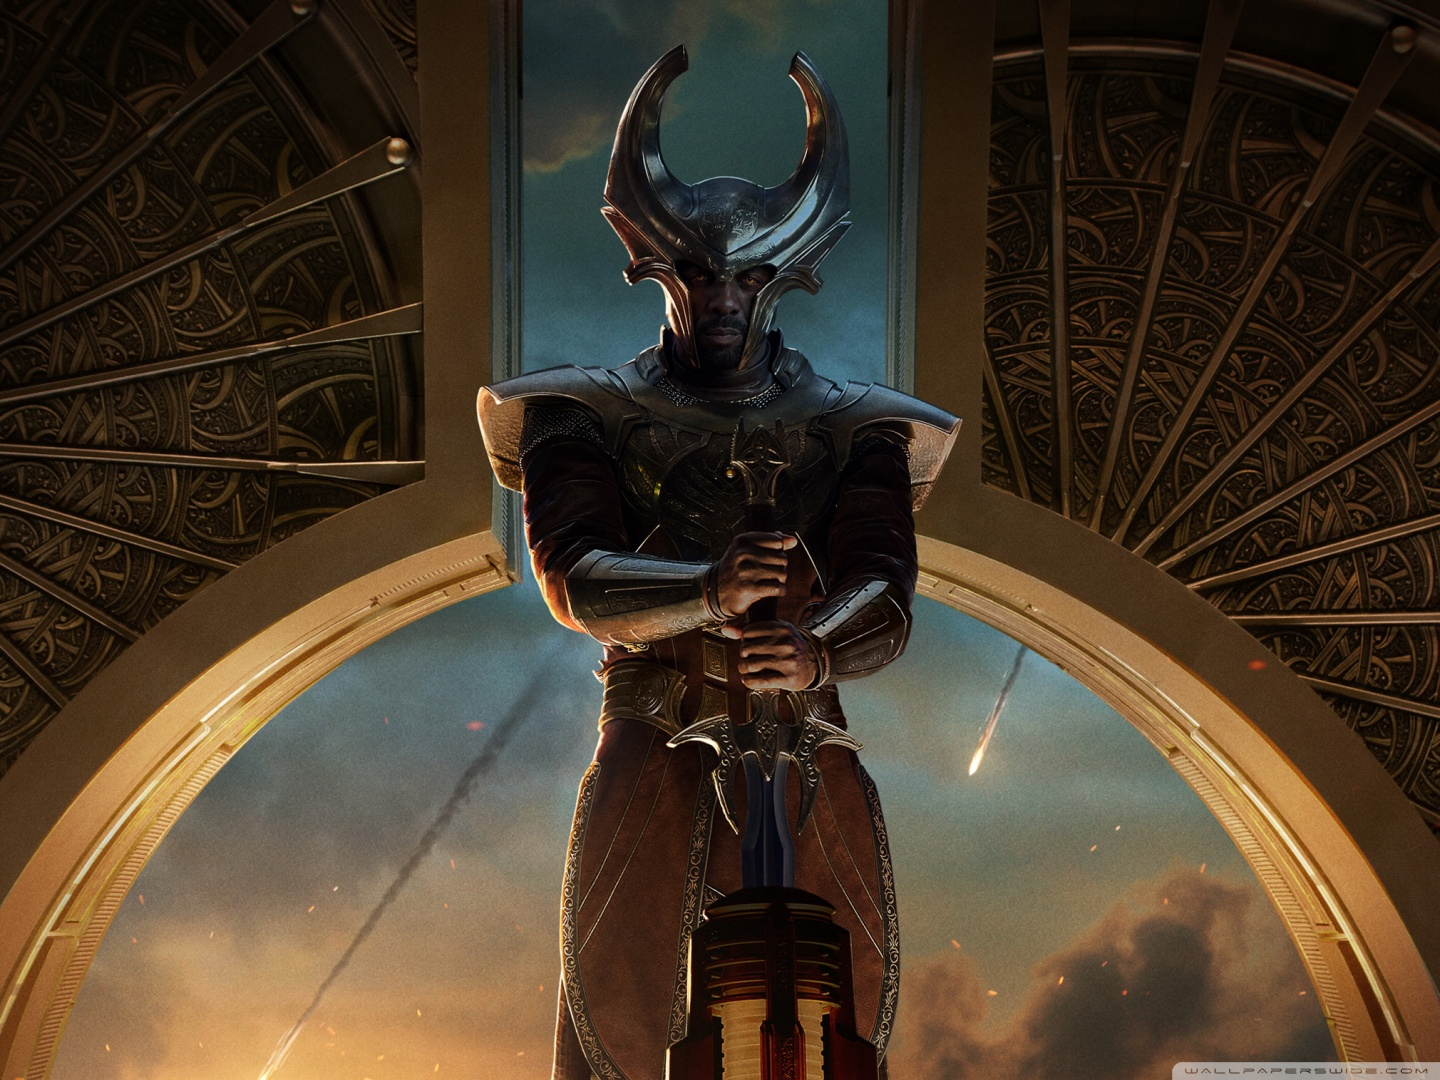 Heimdall And Loki To Return In Avengers: Age Of Ultron